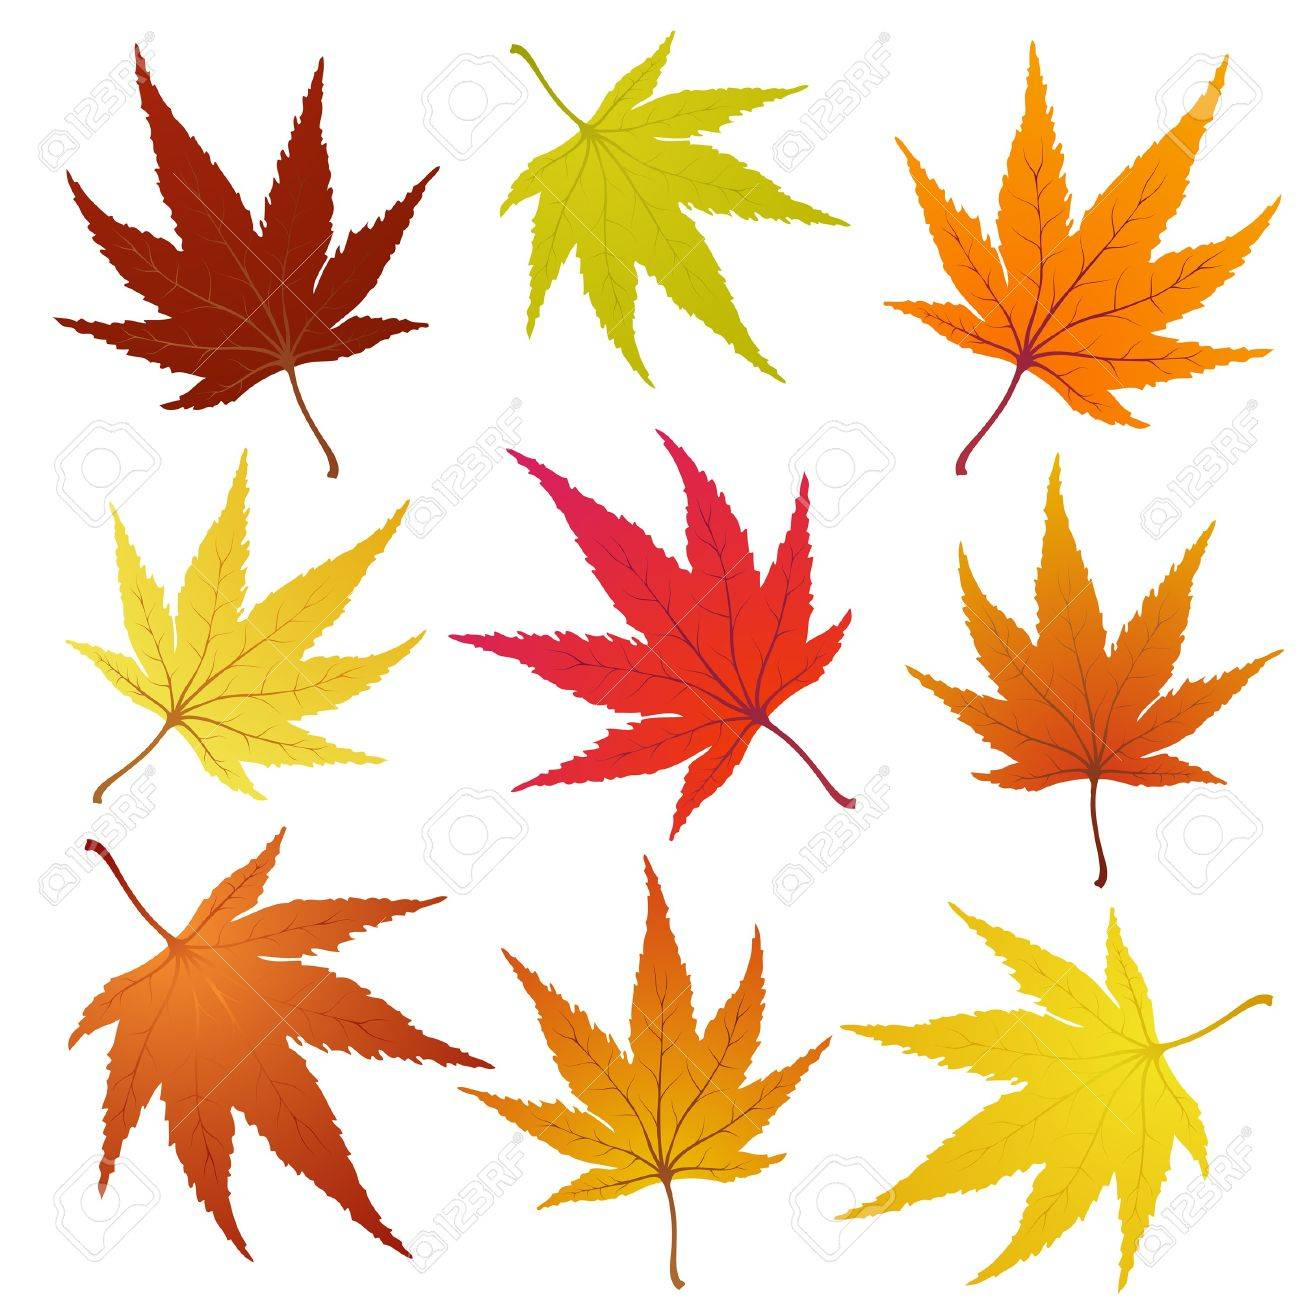 Set of of autumn  maples leaves.  illustration. Stock Vector - 7763525